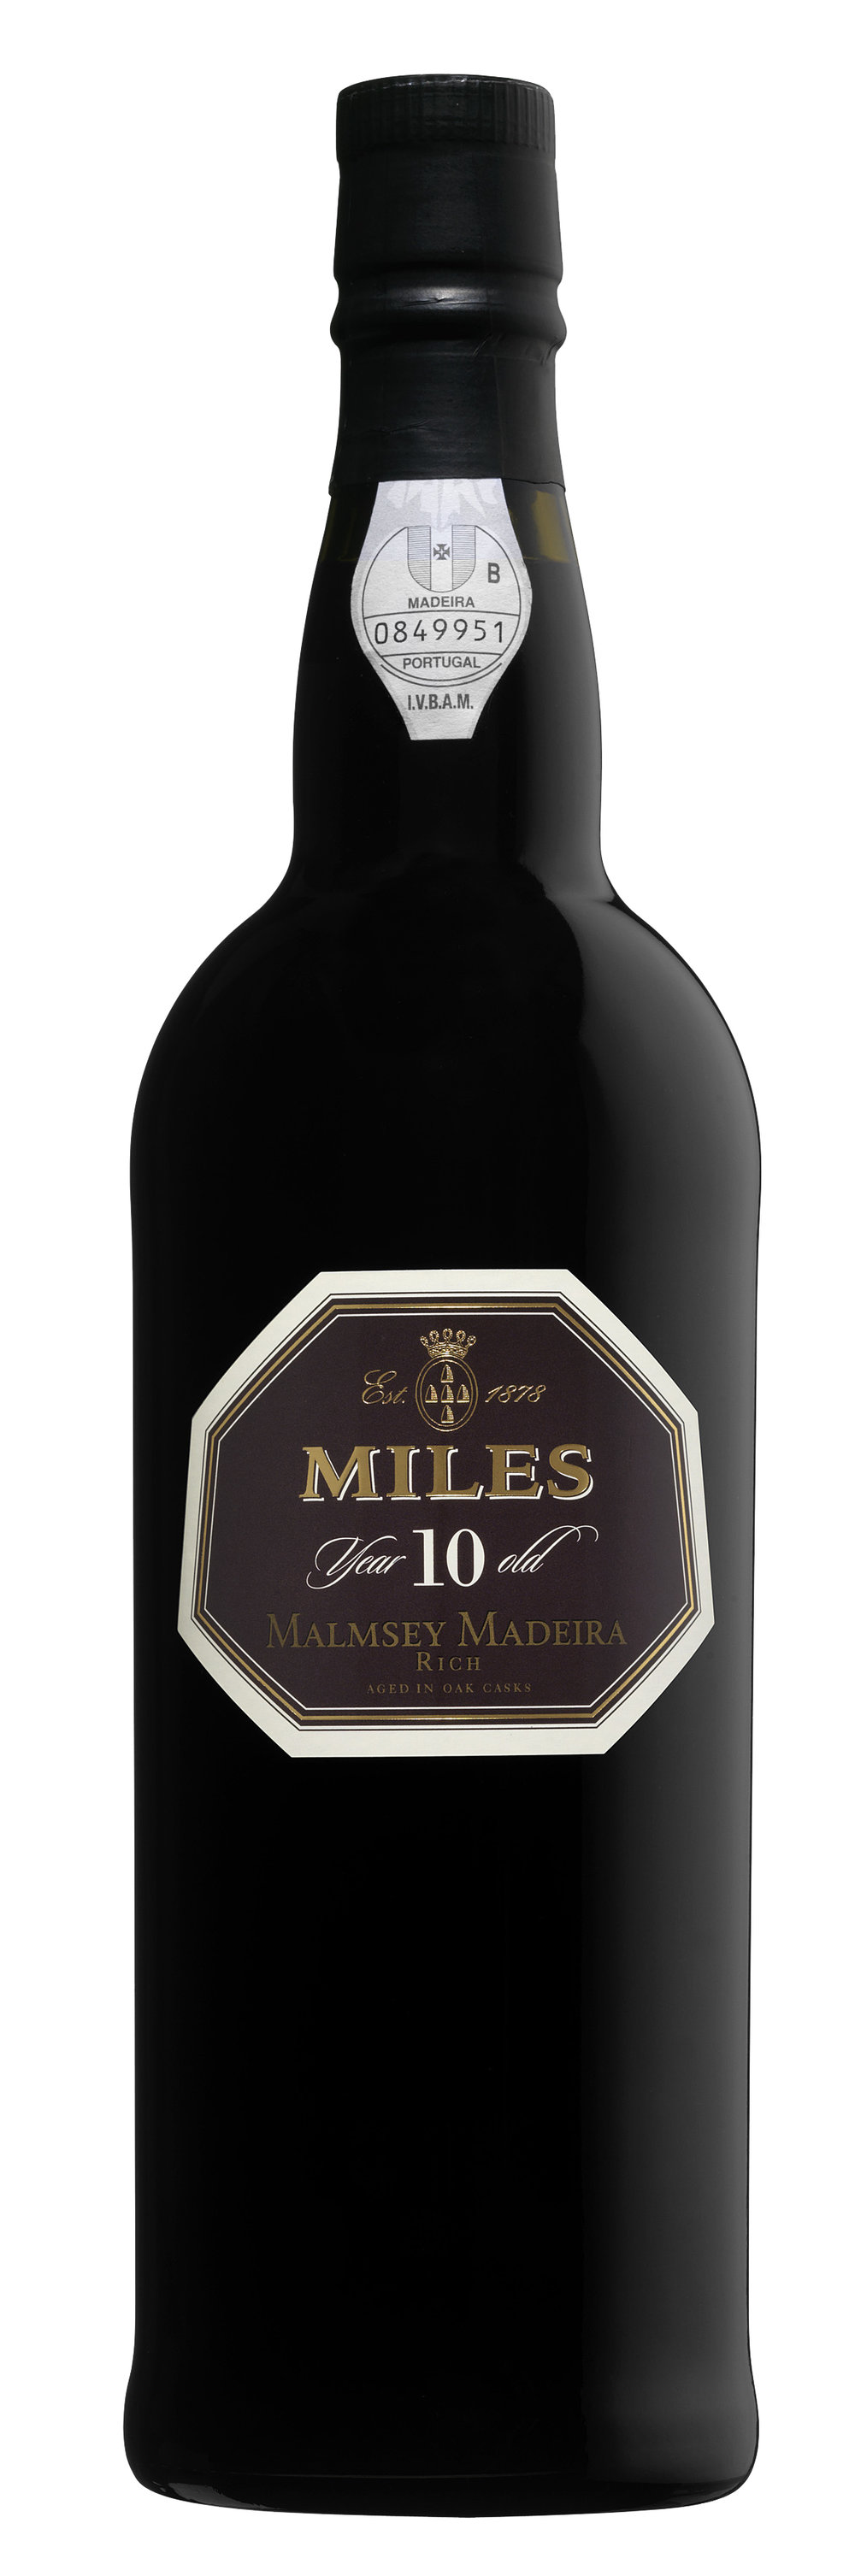 miles_madeira_10_year_old_malmsey_.jpg